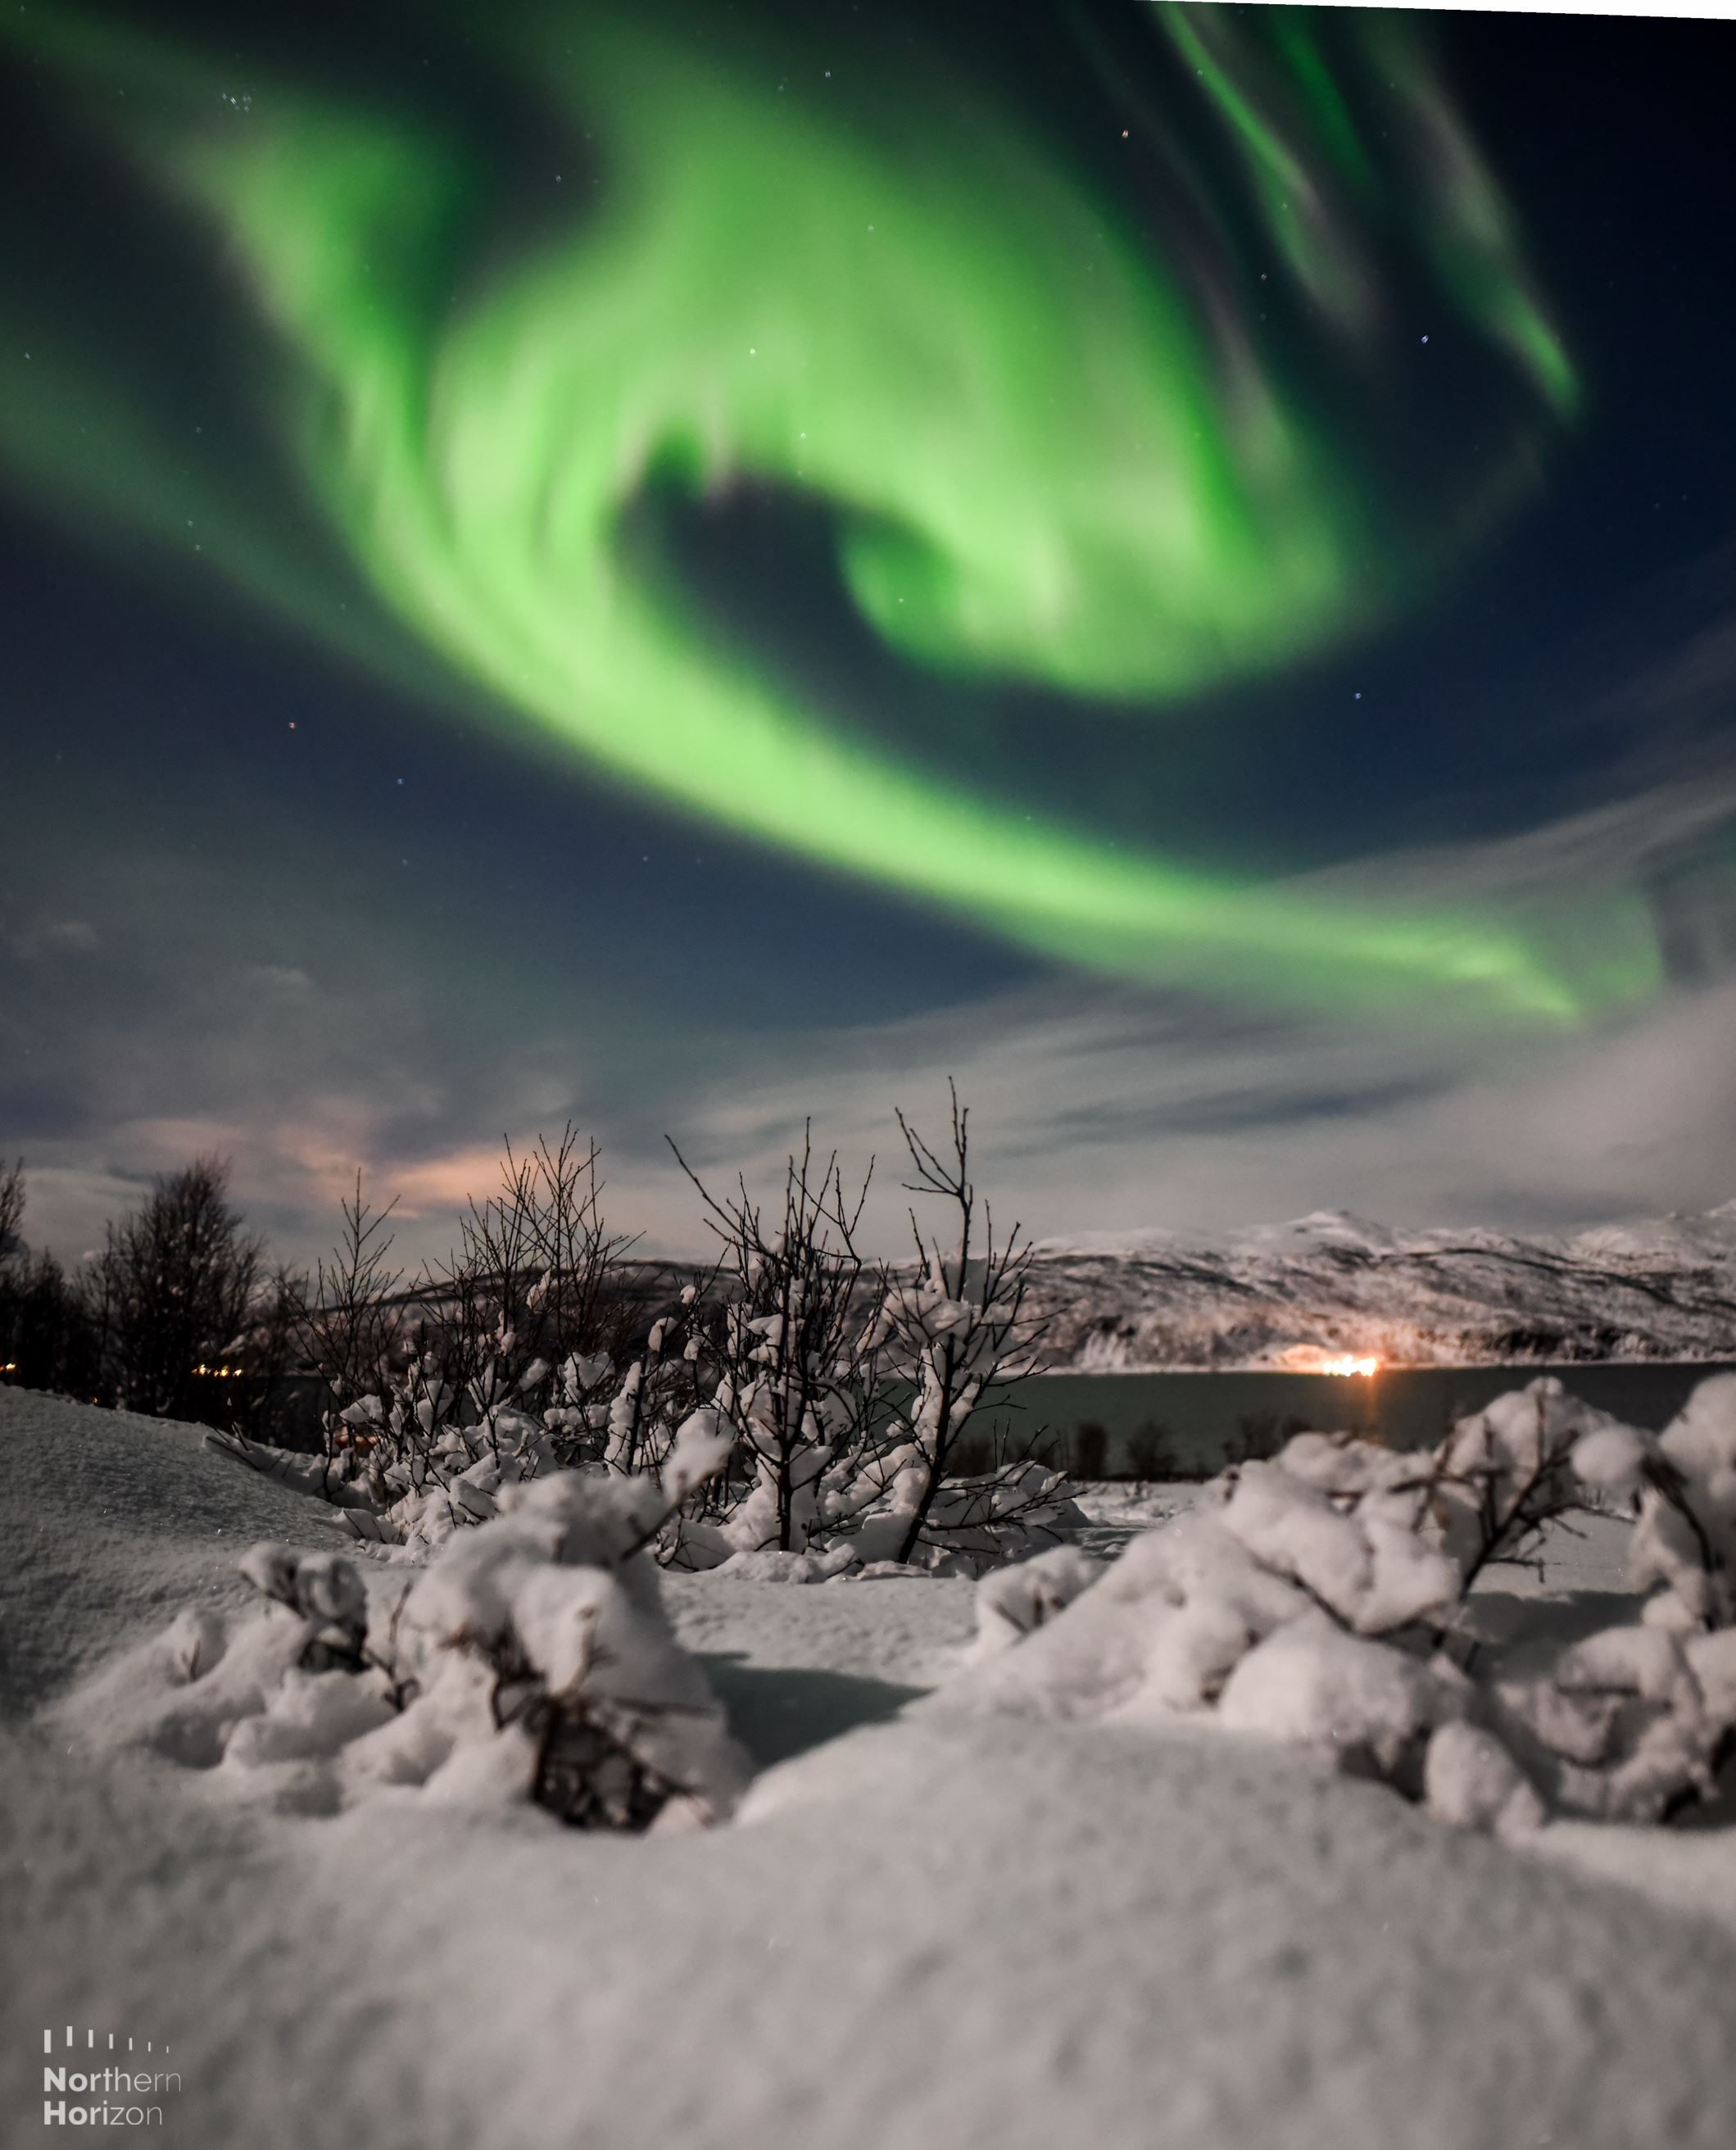 Small group Northern Lights tour - All inclusive - Accommodation pickup - Northern Horizon